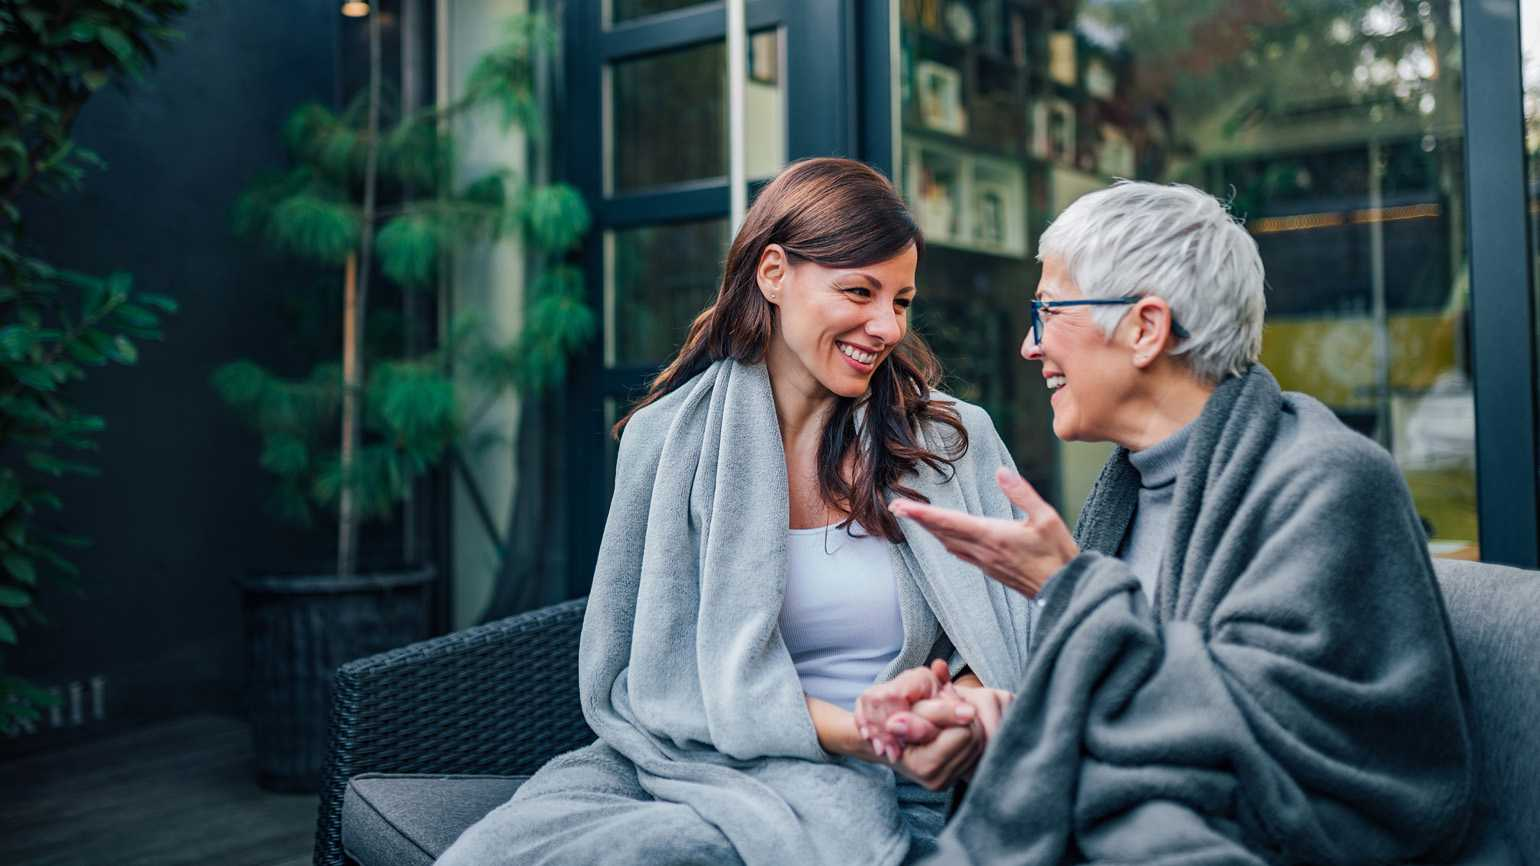 An aging mother having a conversation with her caregiver daughter.